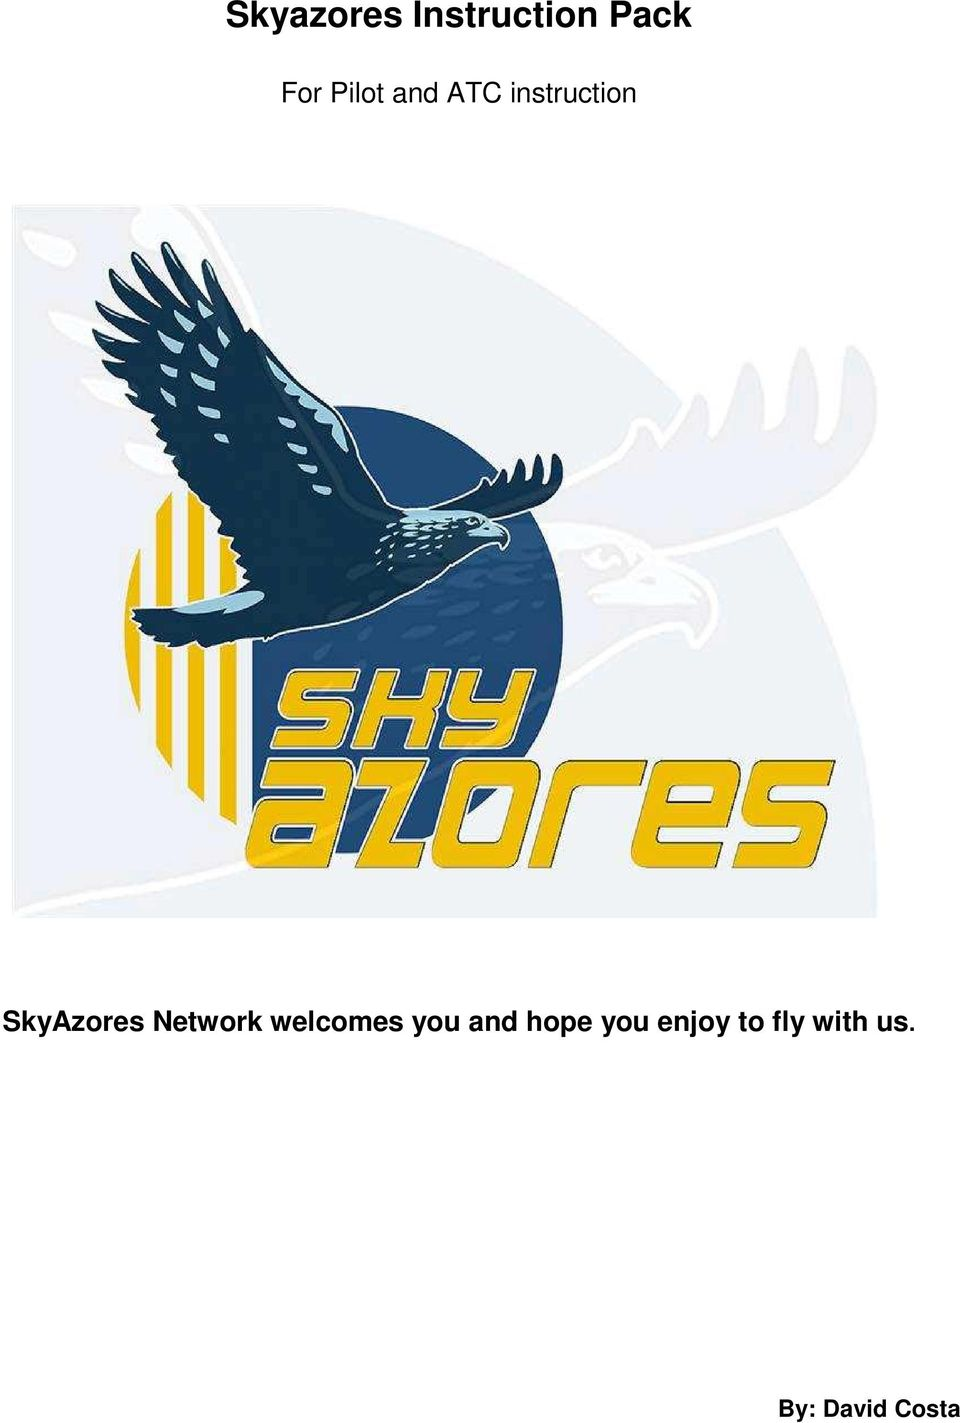 SkyAzores Network welcomes you and